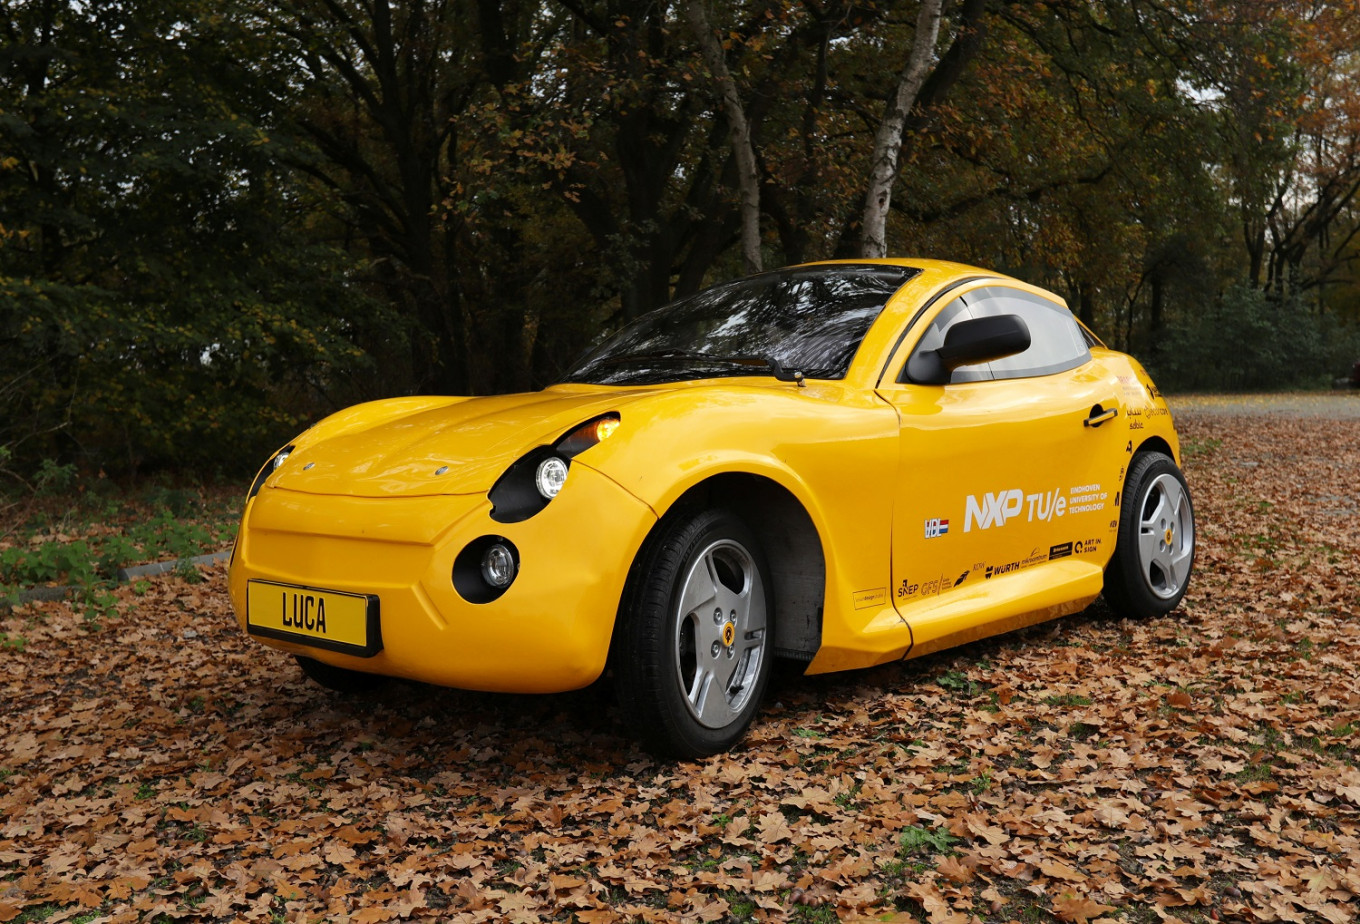 Waste not, want not: Dutch students build electric car from recycled material